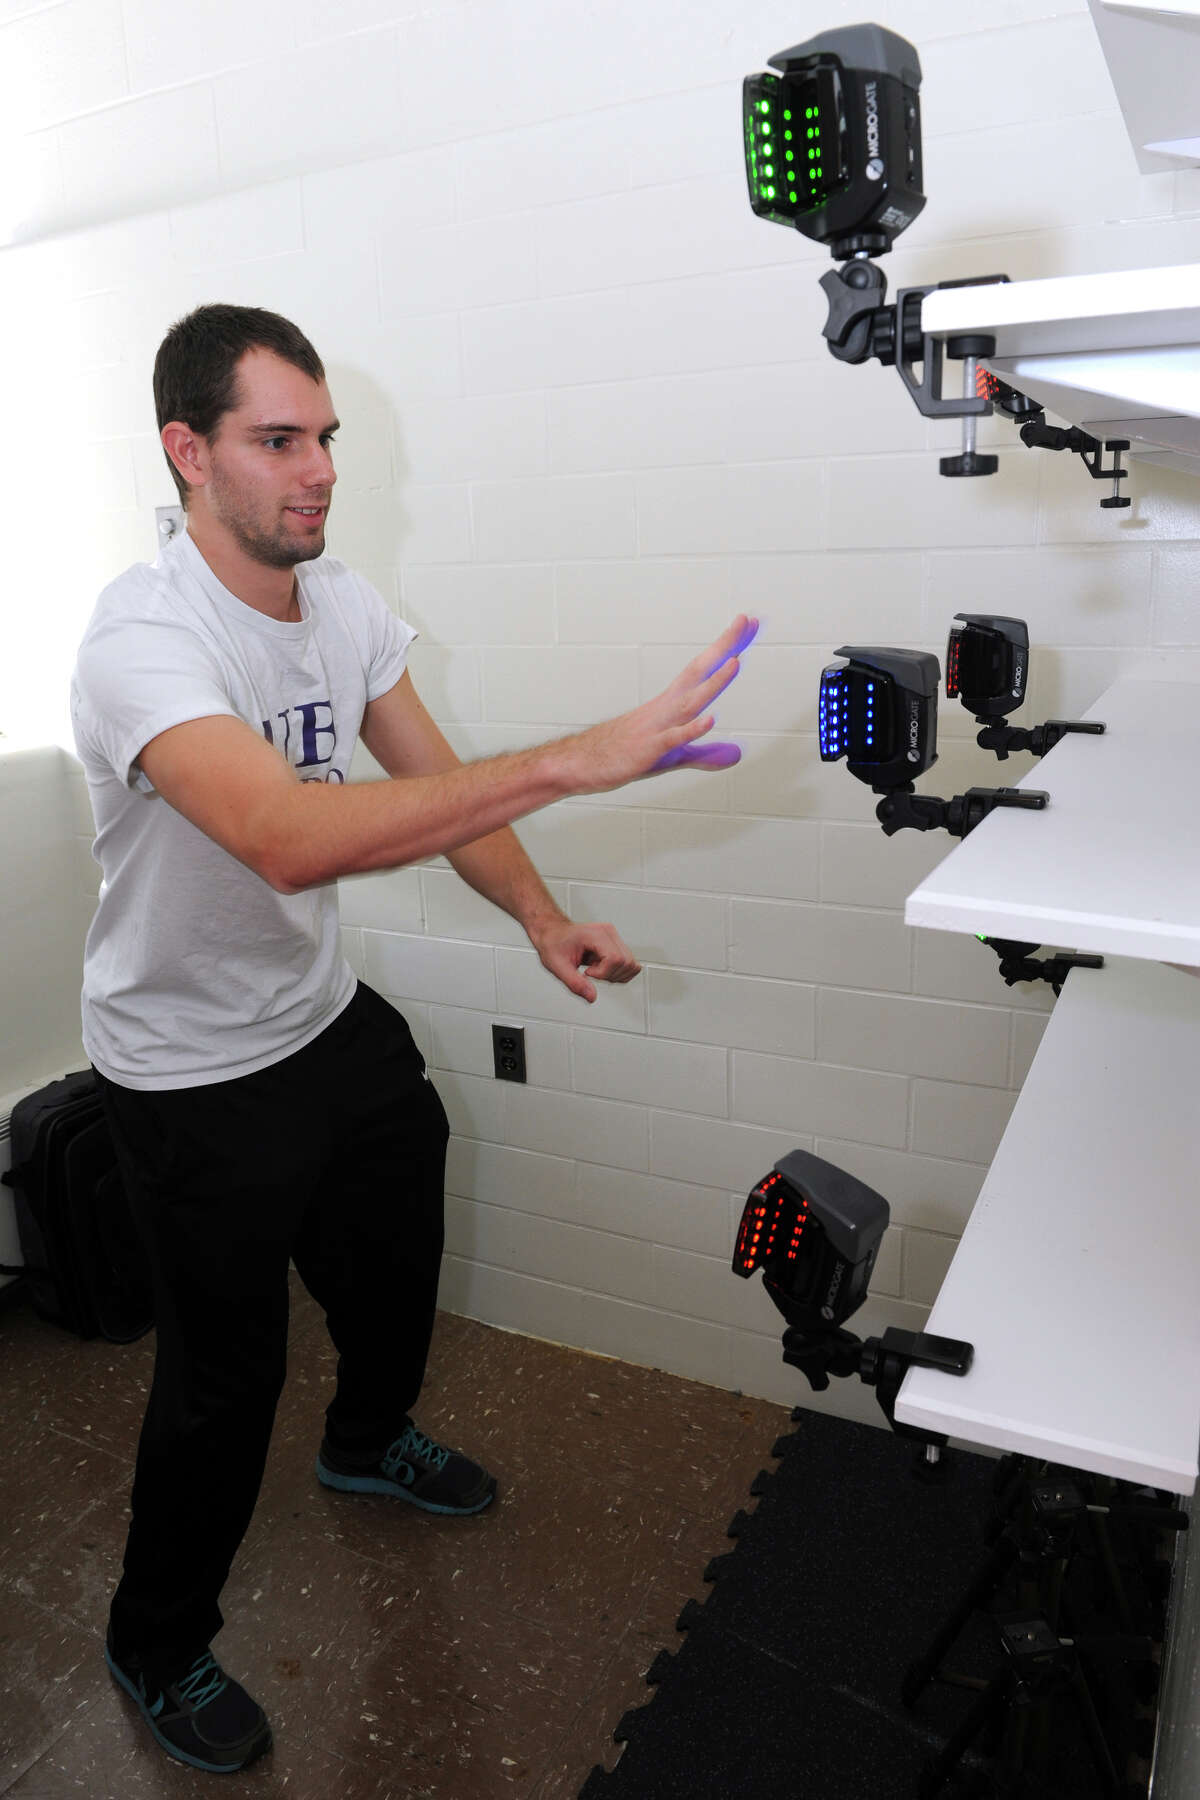 Scott Colello, a second year Chiropractic student from Poughkeepsie, NY takes part in an agility test, part of biomotor skills testing at the University of Bridgeport, in Bridgeport, Conn. Oct. 27, 2015.